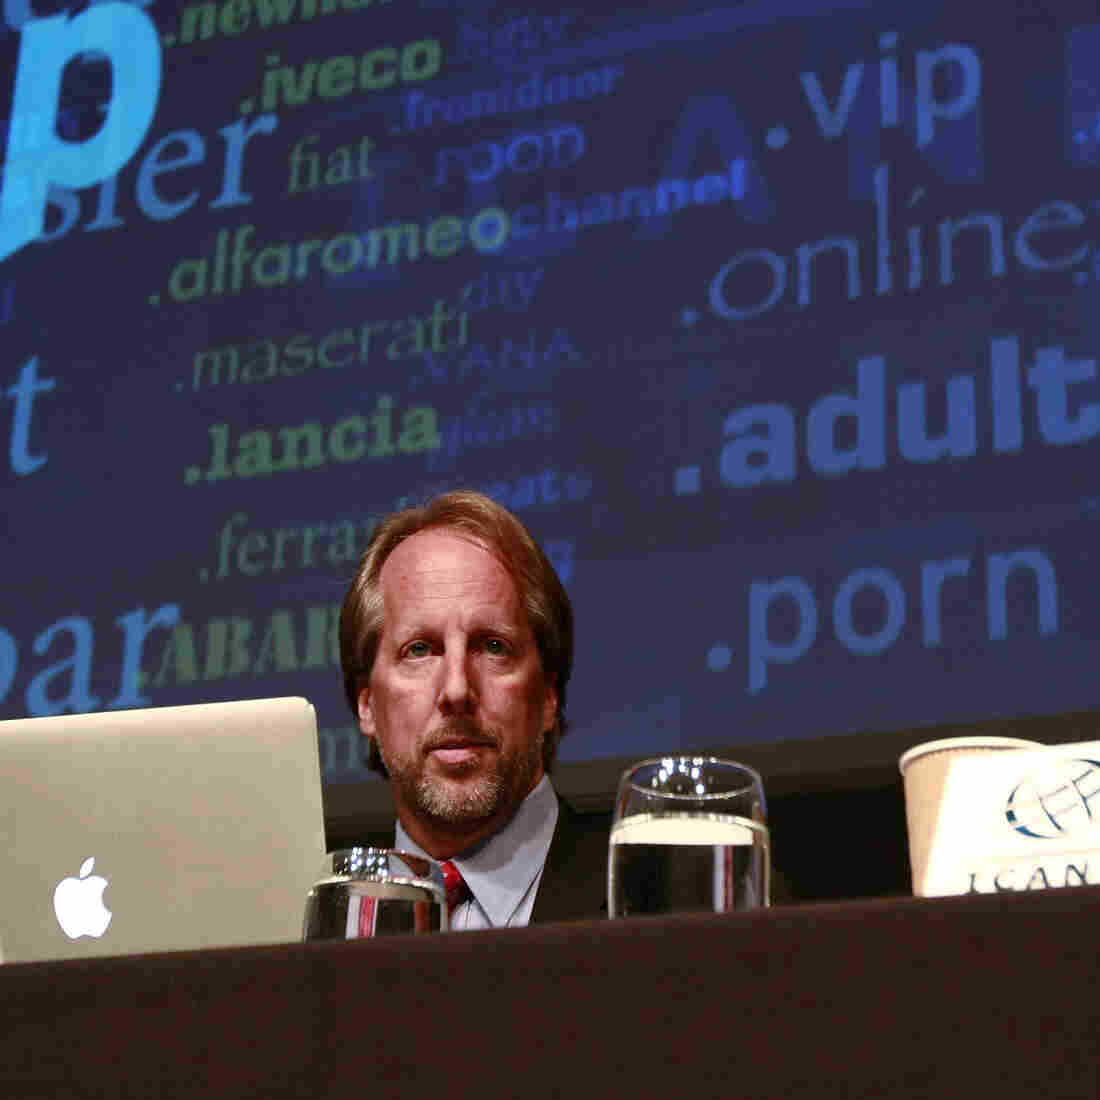 ICANN's Call For New Domain Names Brings Criticism, And $357 Million